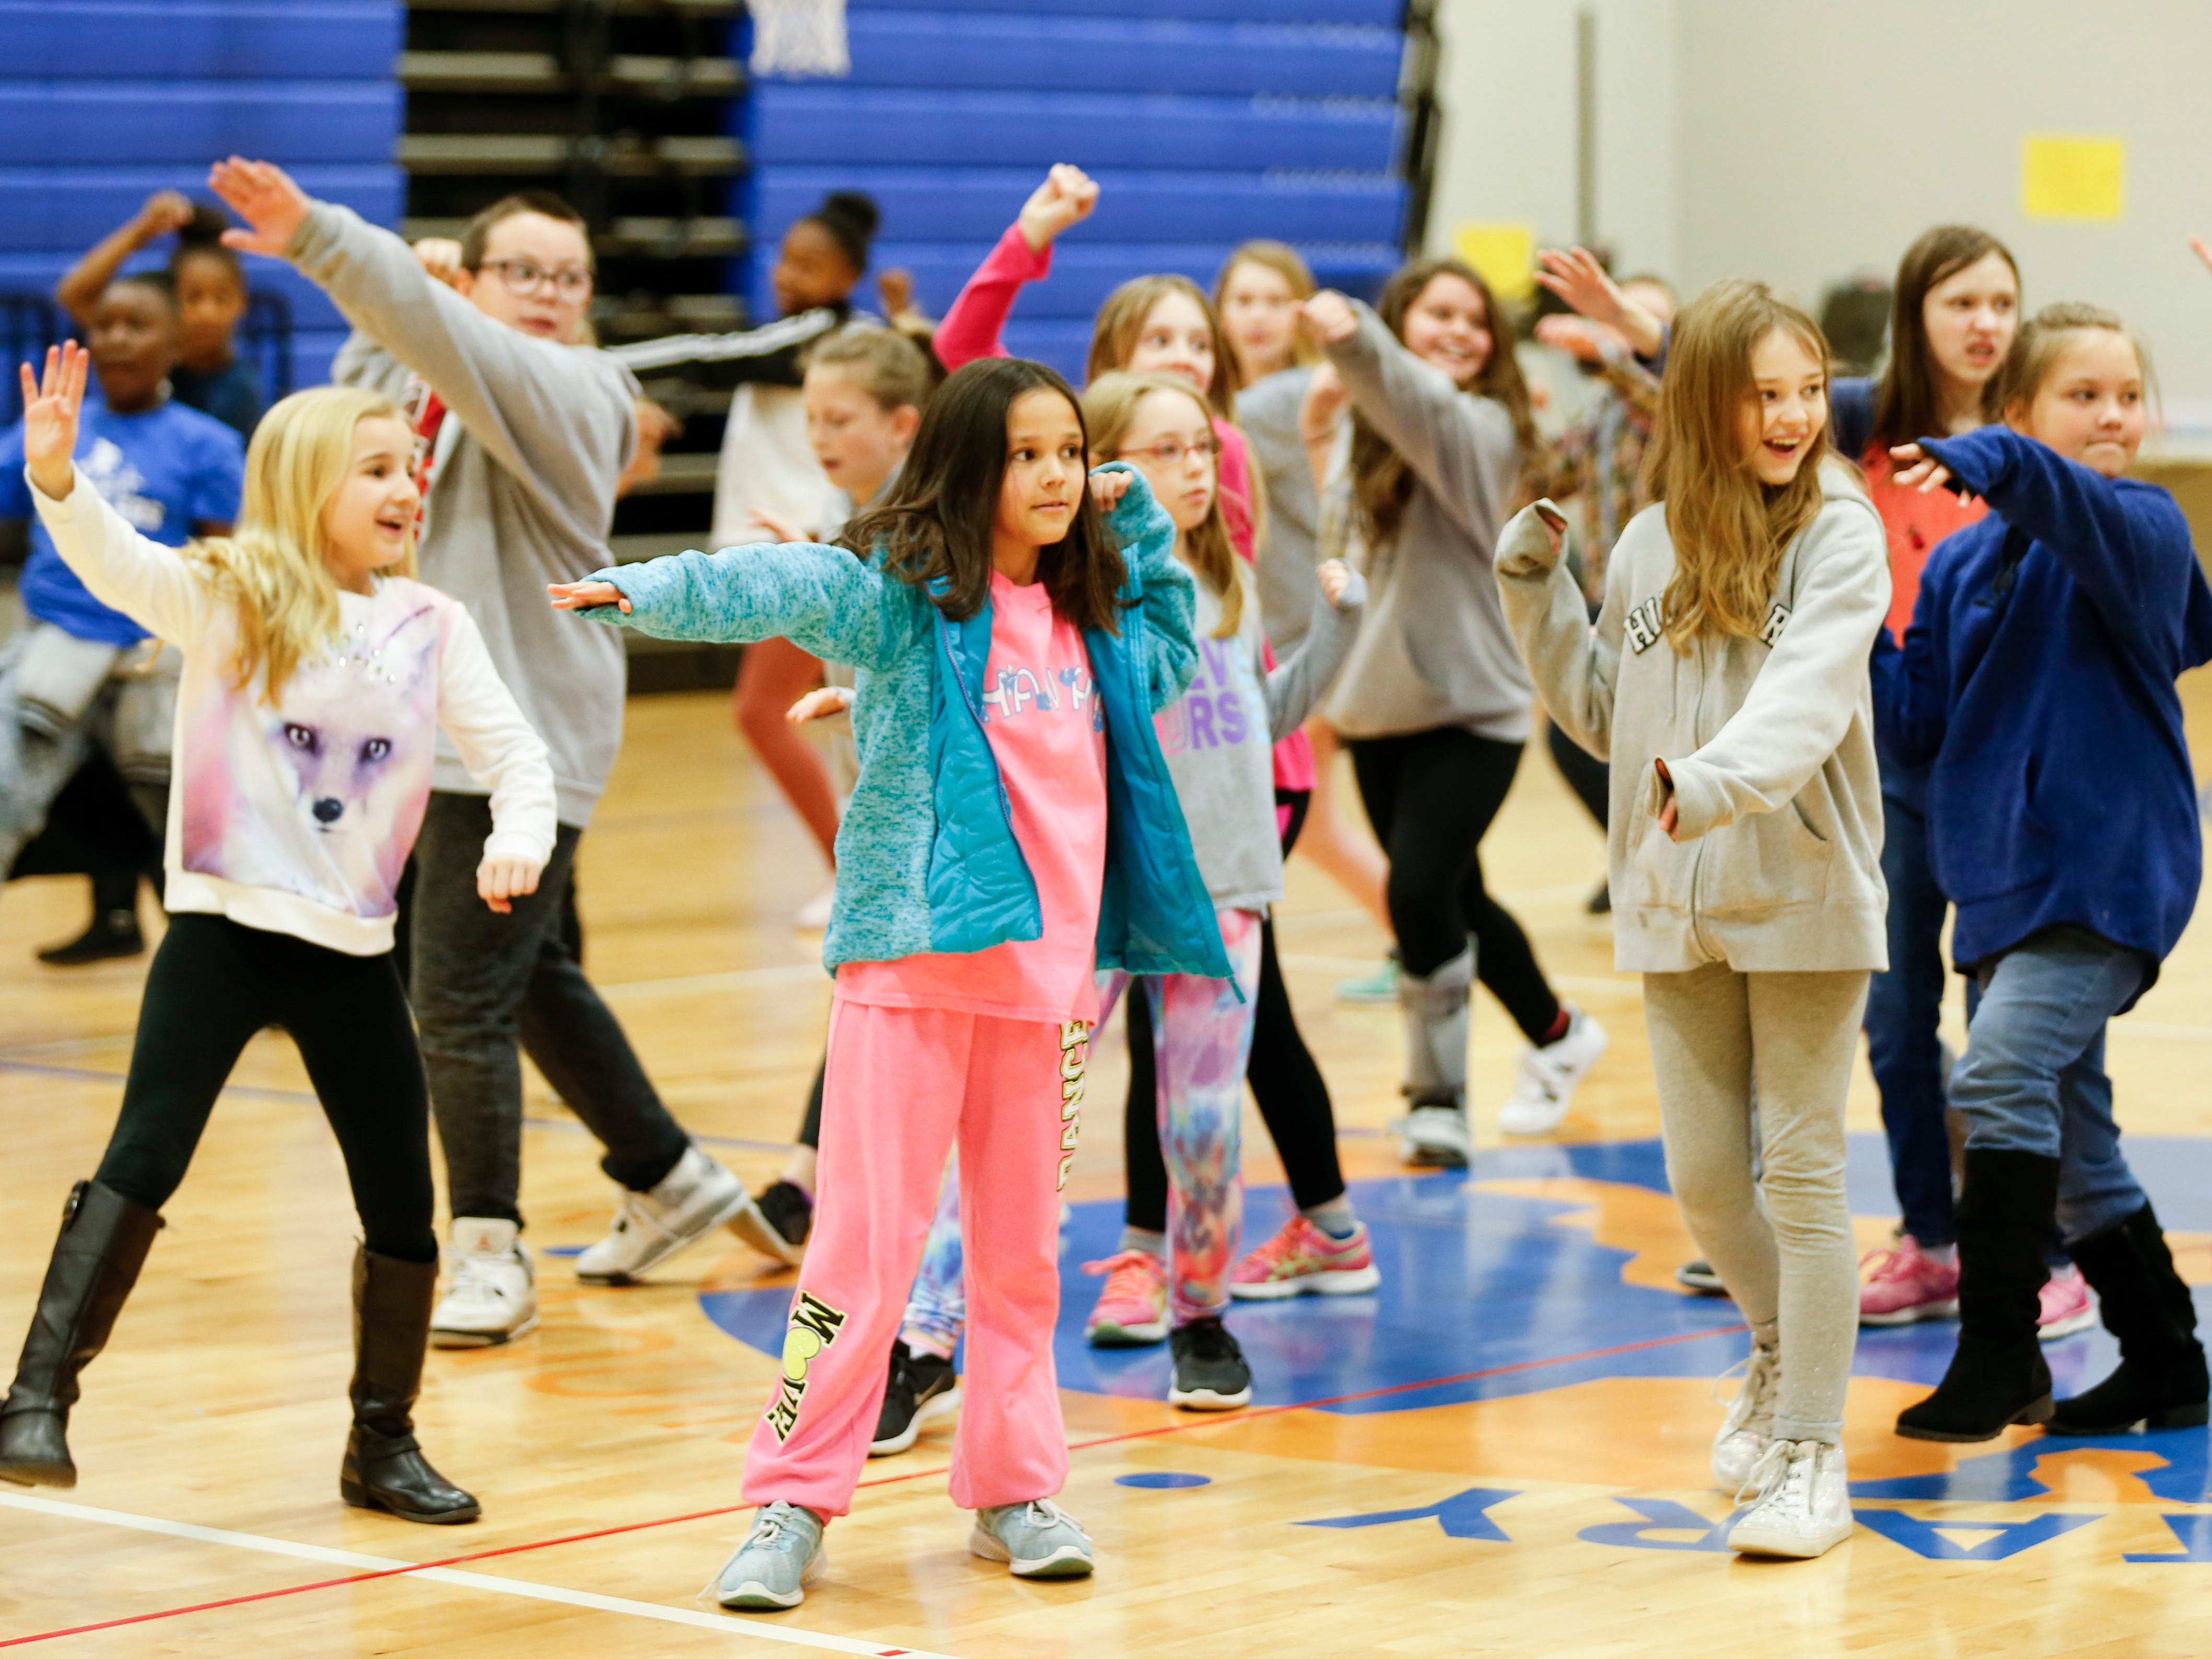 """Fremont Elementary School students learn dance moves from cast members of """"The Lion King"""" on Tuesday, March 5, 2019."""